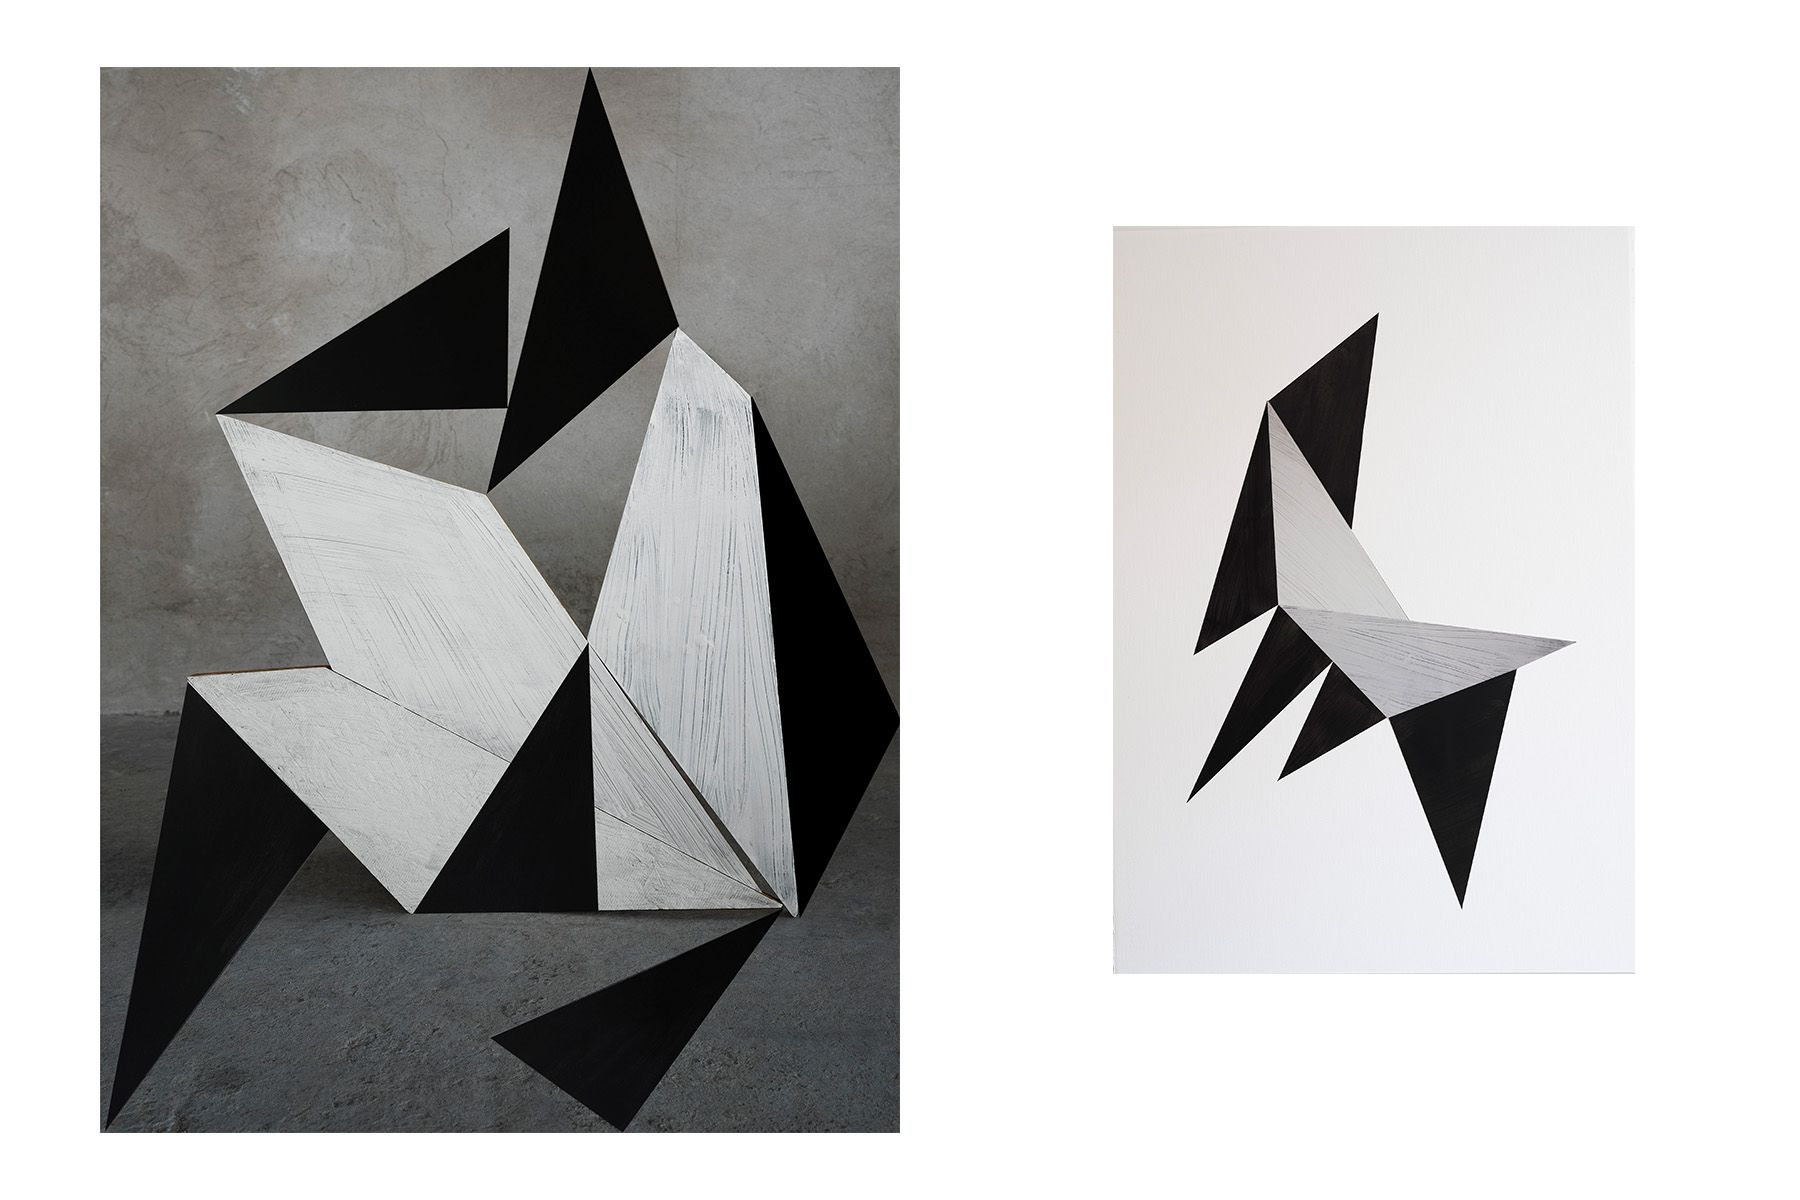 Stacking Composition in Black, 2019 (left) / Midnight Origami, 2019 (right)